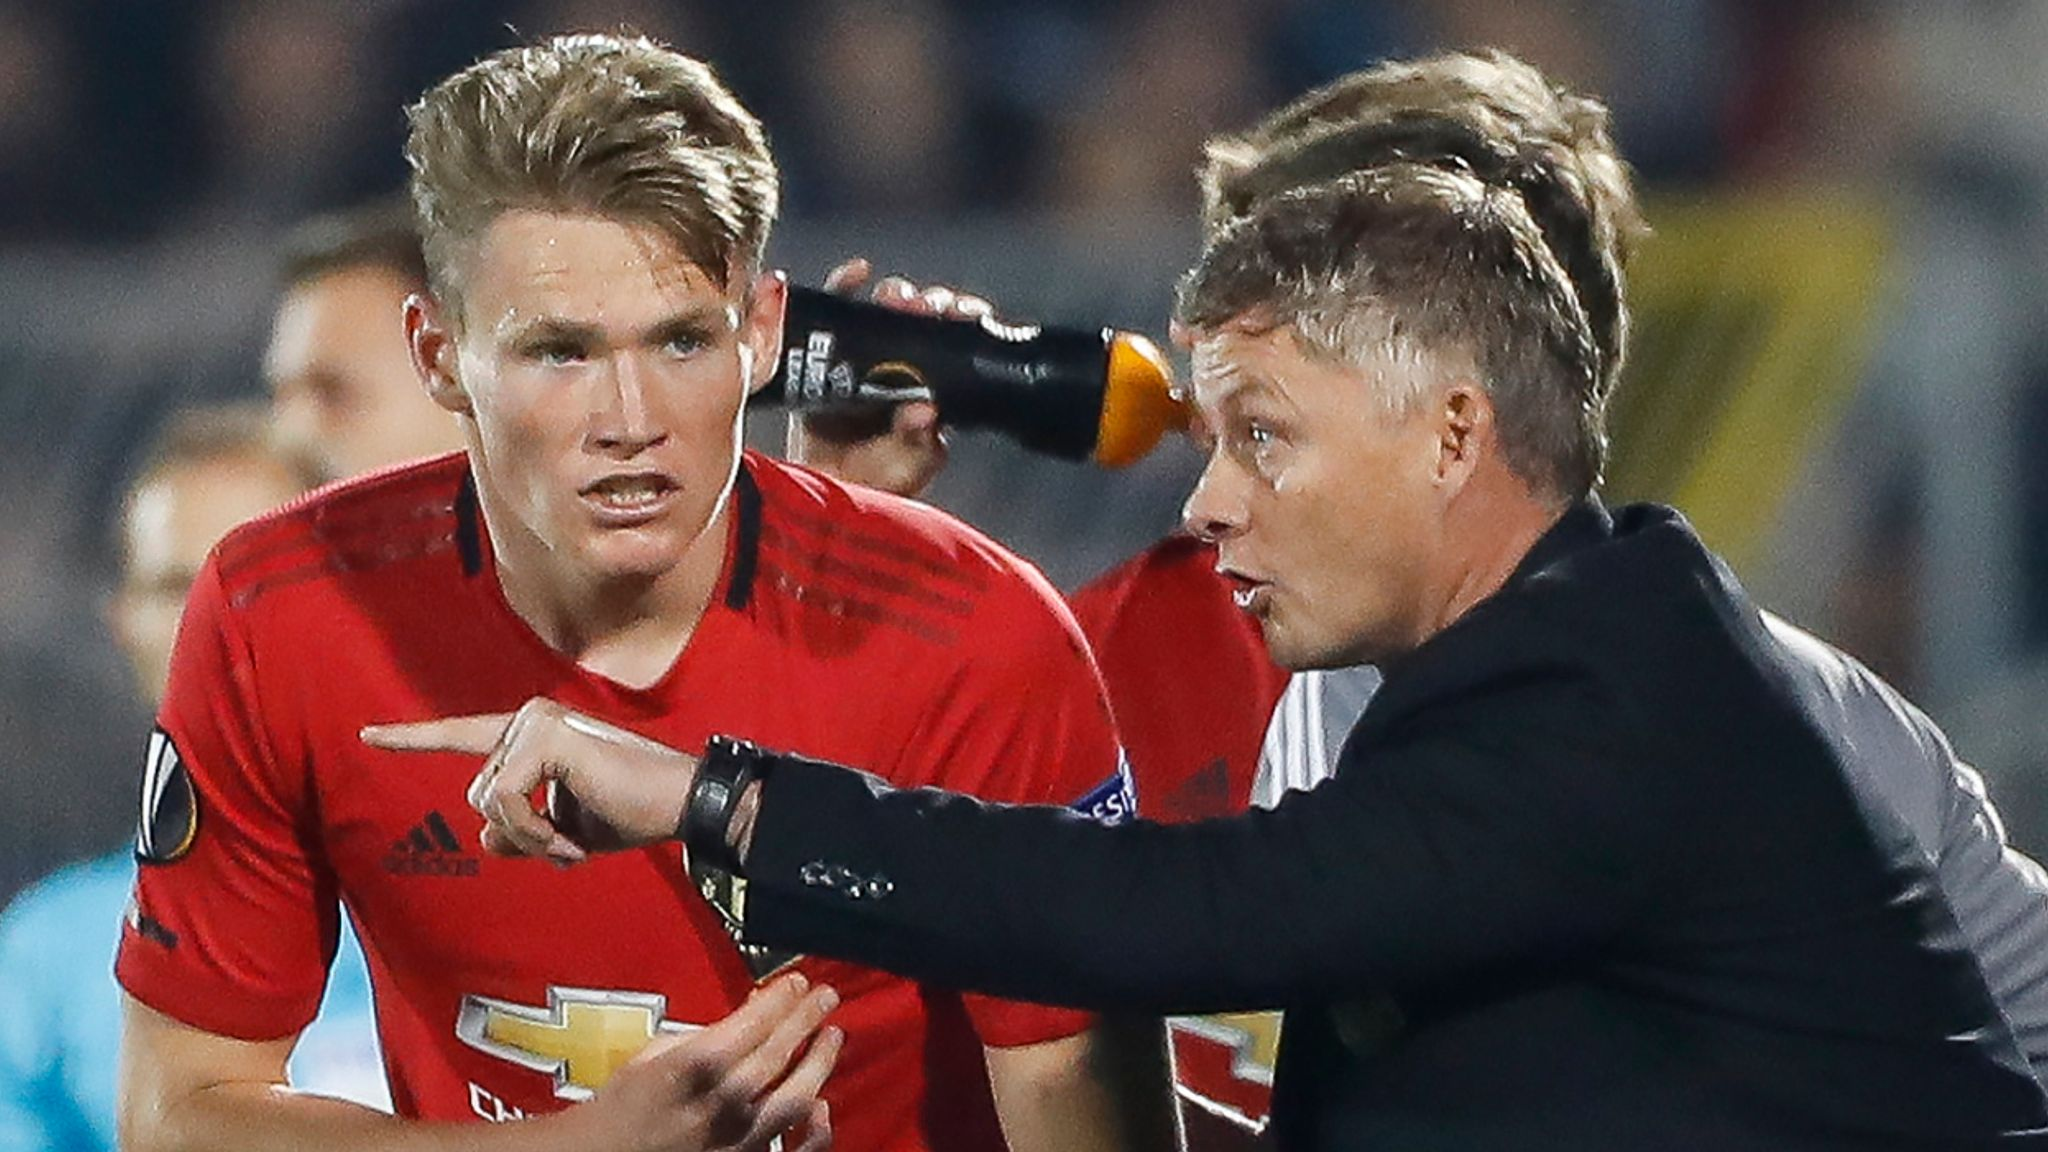 Scott McTominay: Manchester United's 'best player' leading the way as Jose Mourinho praises him